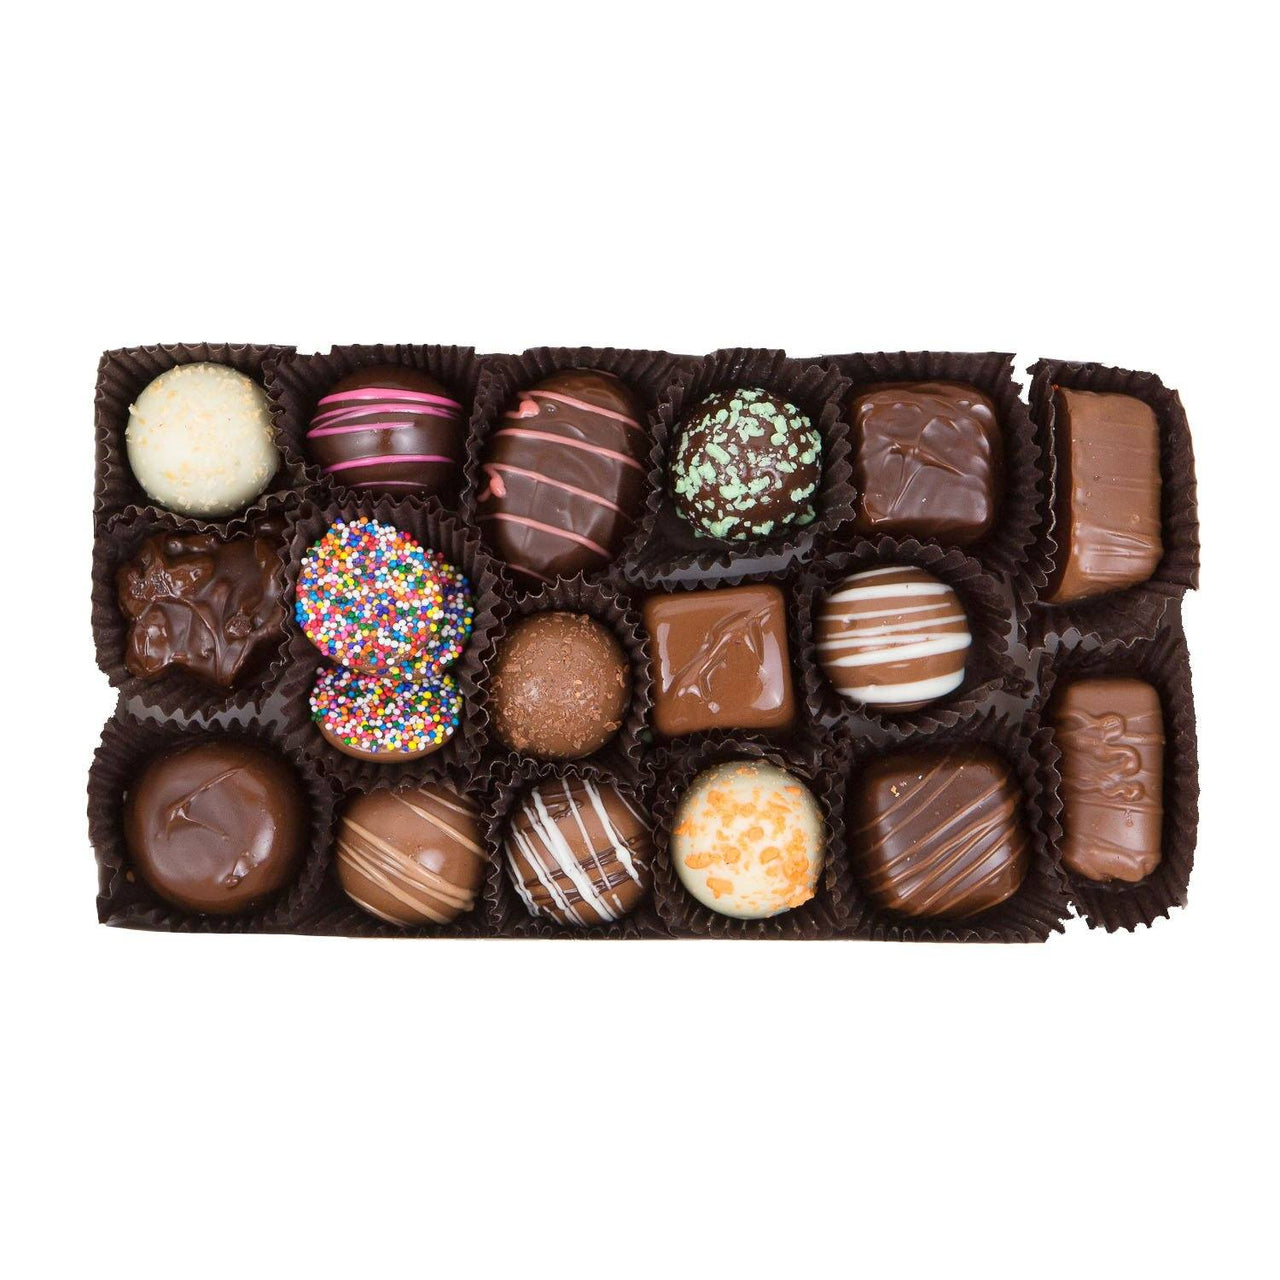 Gifts for Foodies - Assorted Chocolate Gift Box - Jackie's Chocolate (1487133900835)